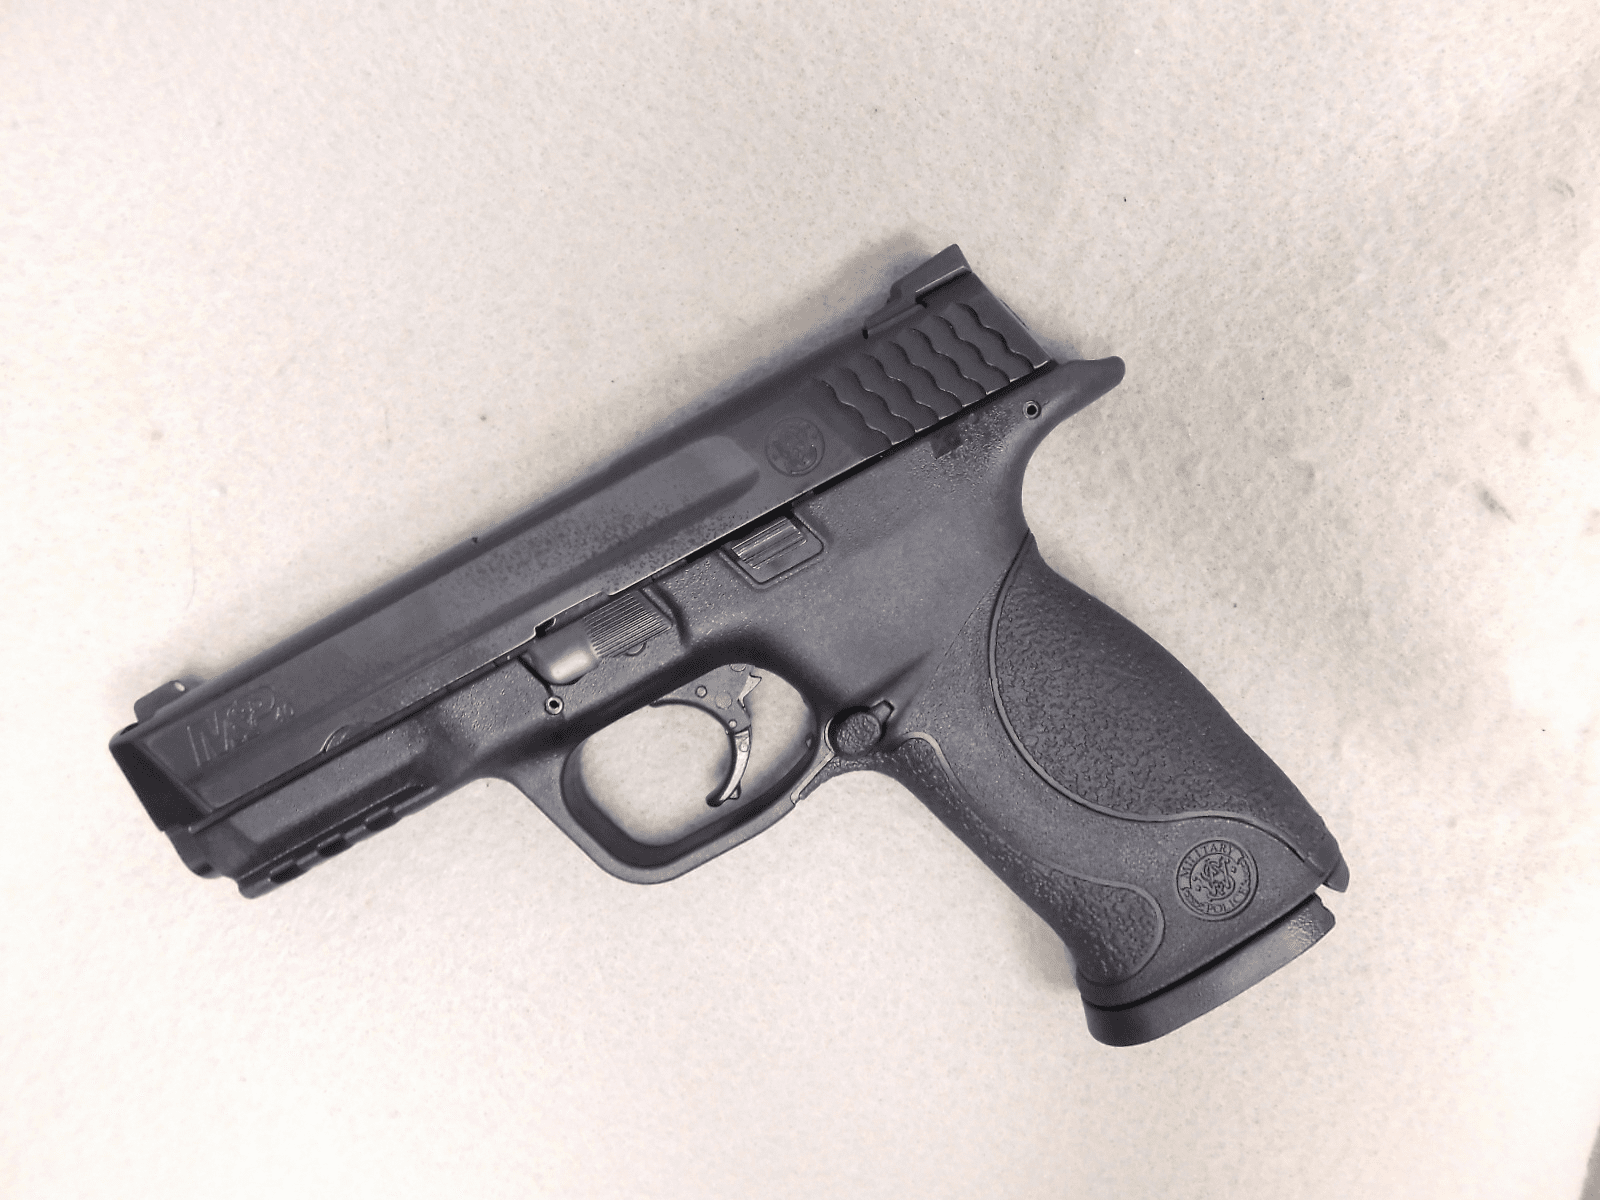 Smith & Wesson M&P 40 (.40)